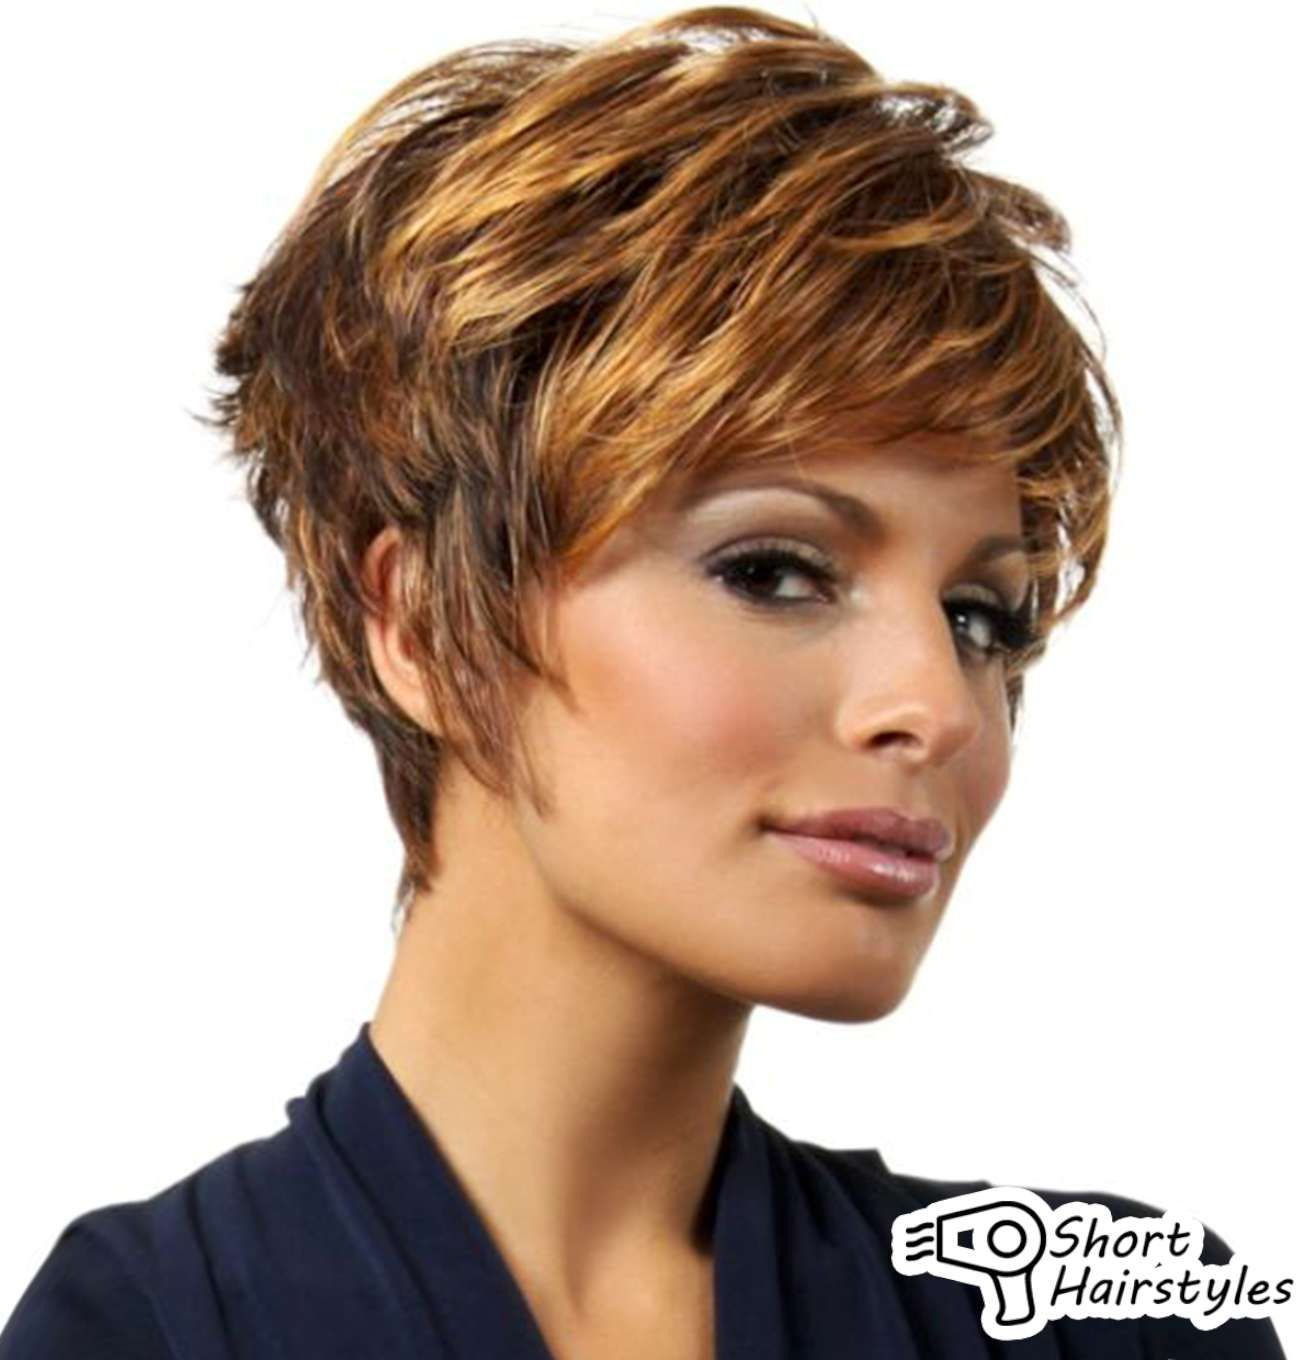 Short hairstyles for thick hair 2015 is troublesome in terms of ...